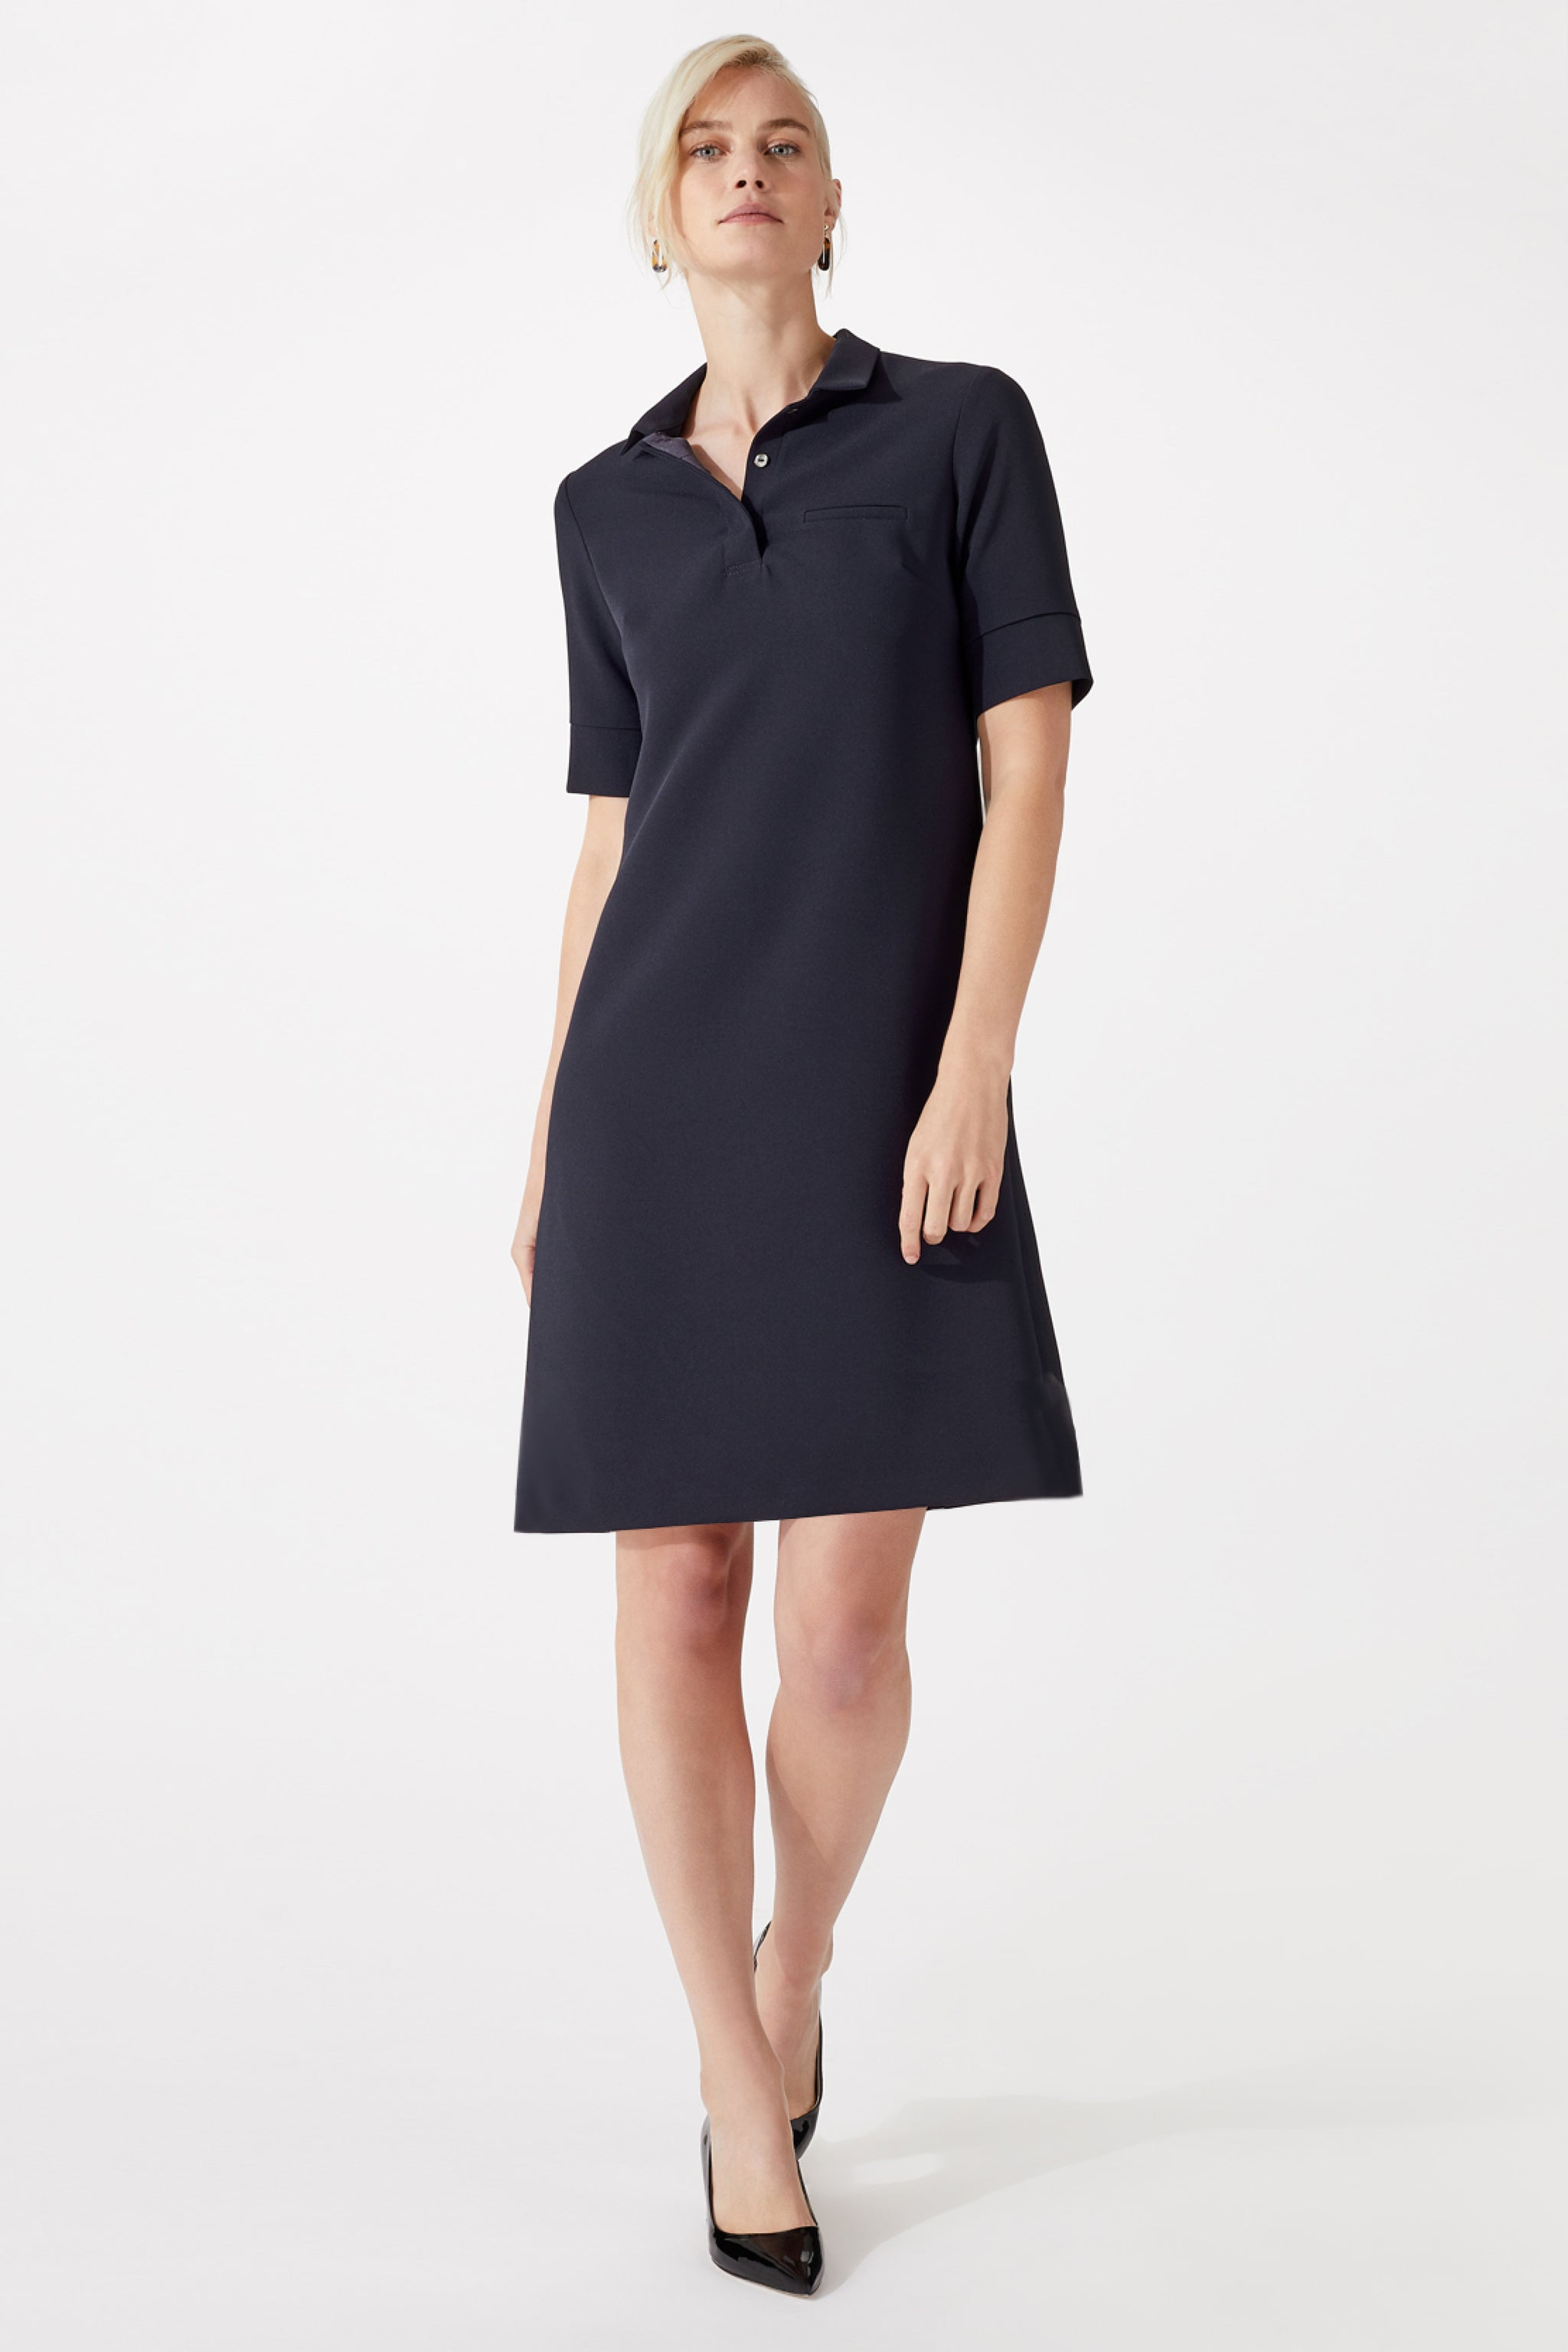 Hurlingham Navy Dress